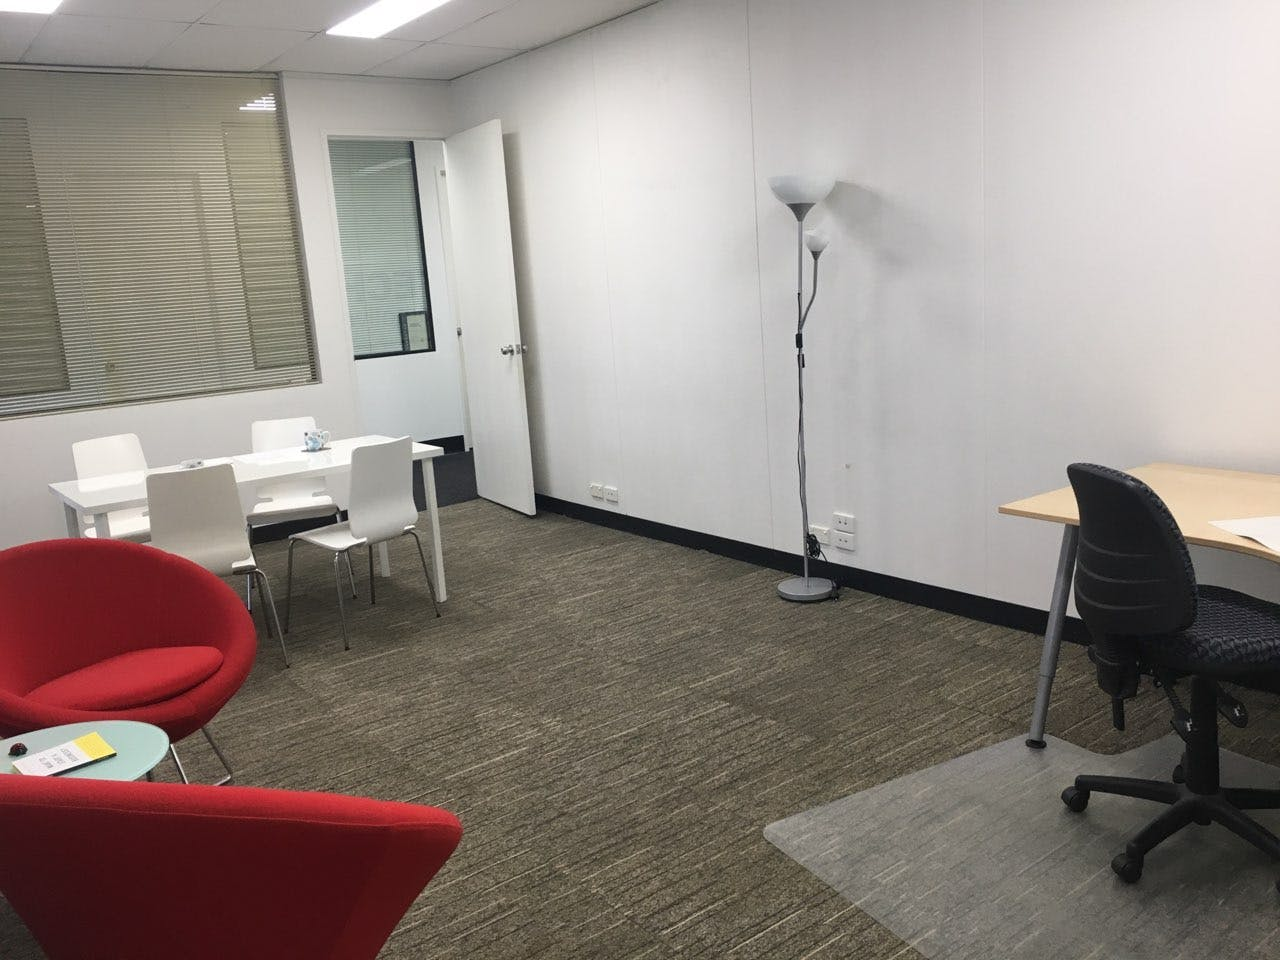 Multi-use area at Professional office, image 1